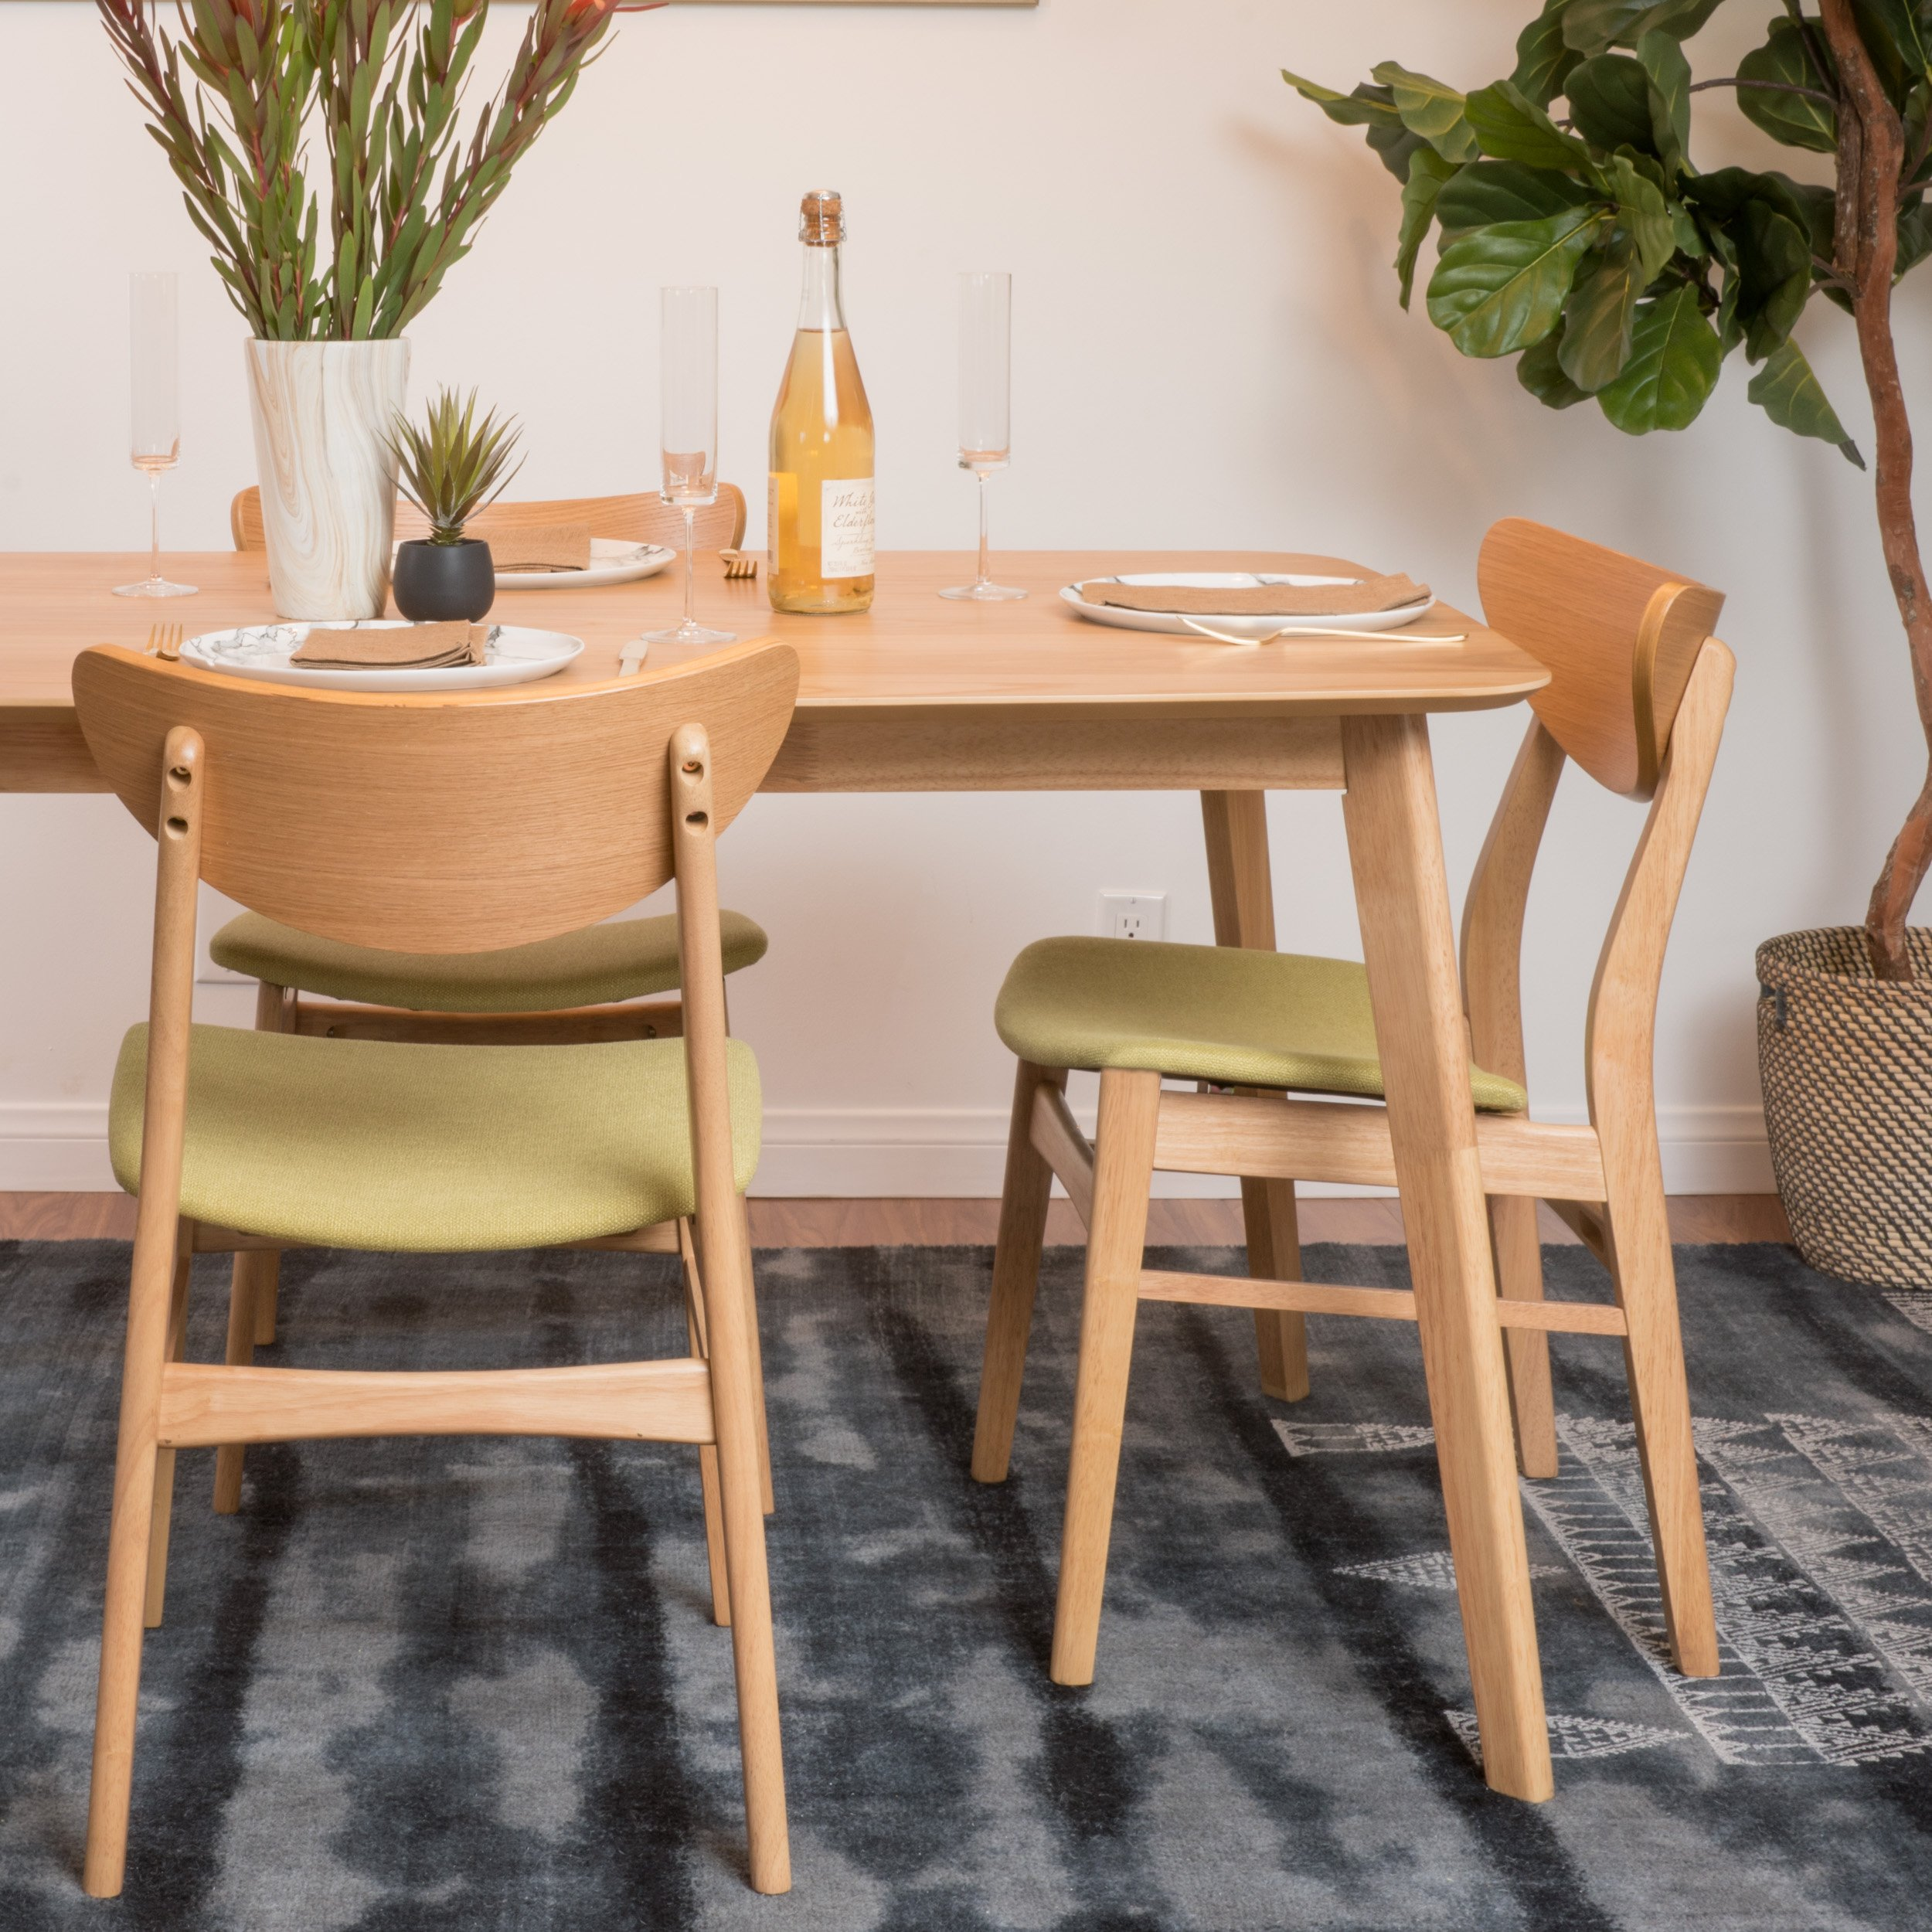 Christopher Knight Home 298997 Anise Dining Chair (Set of 2), Green Tea by Christopher Knight Home